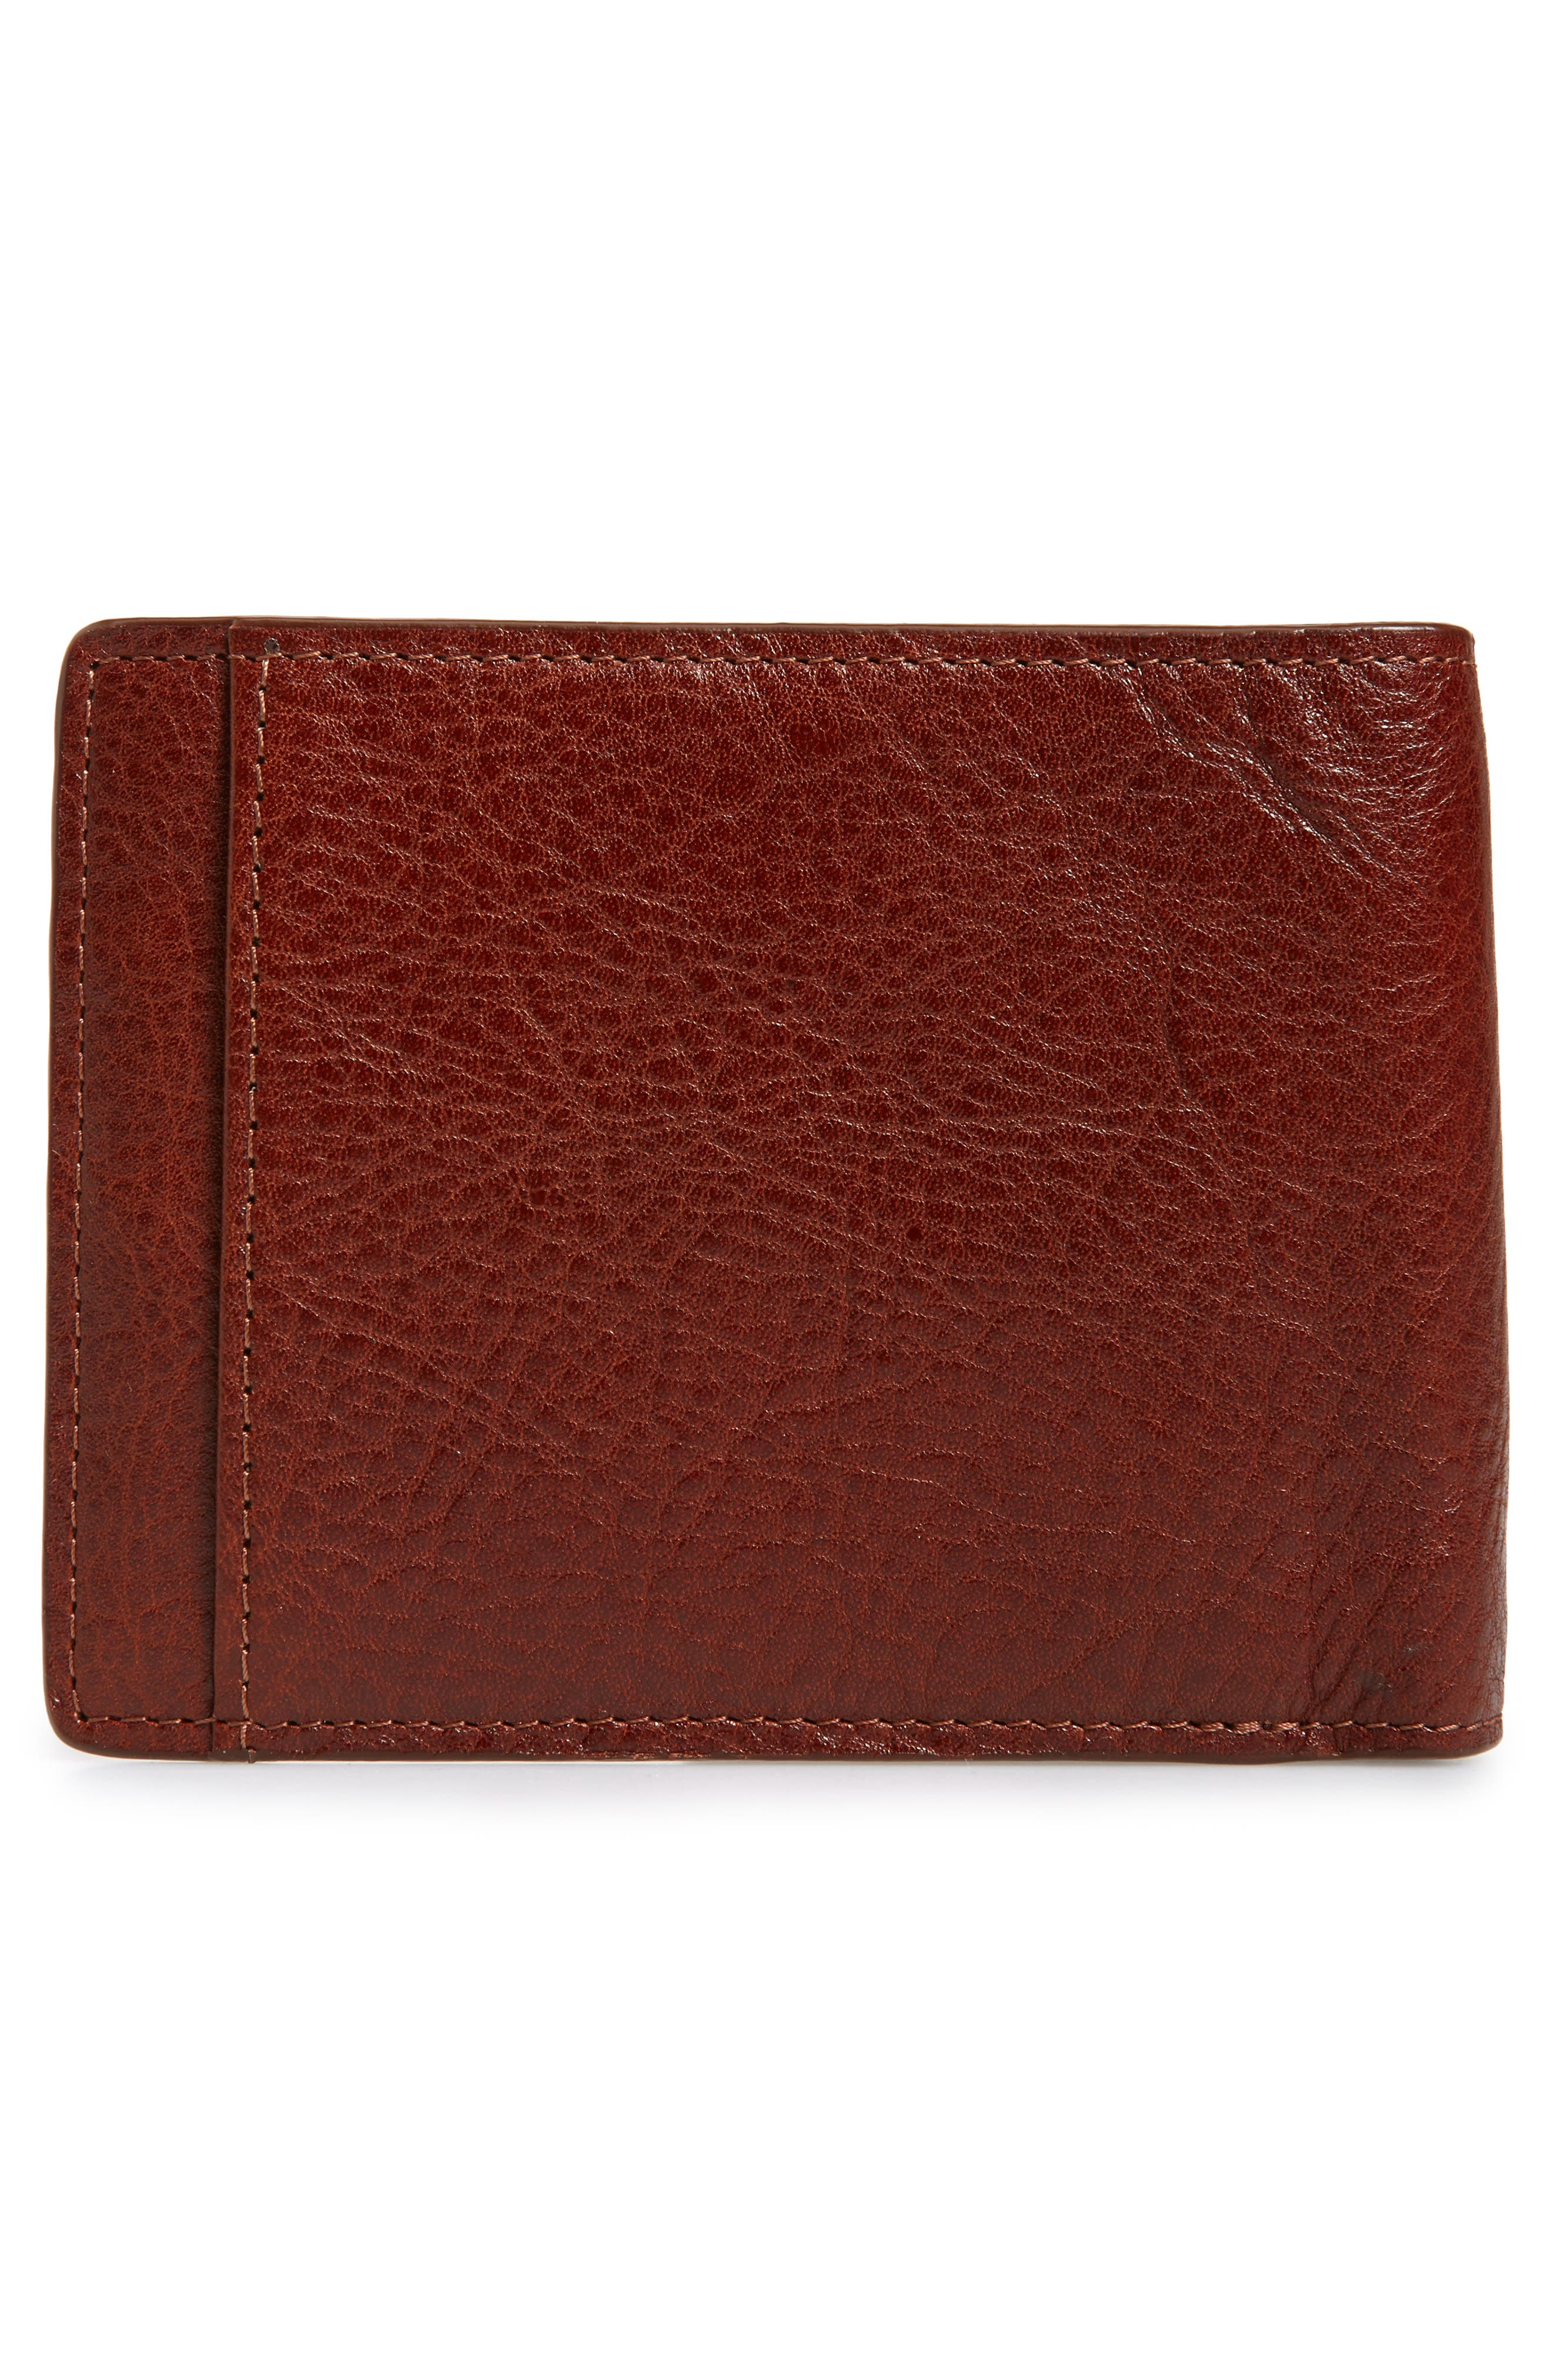 Richmond Leather Wallet,                             Alternate thumbnail 3, color,                             BROWN HENNA